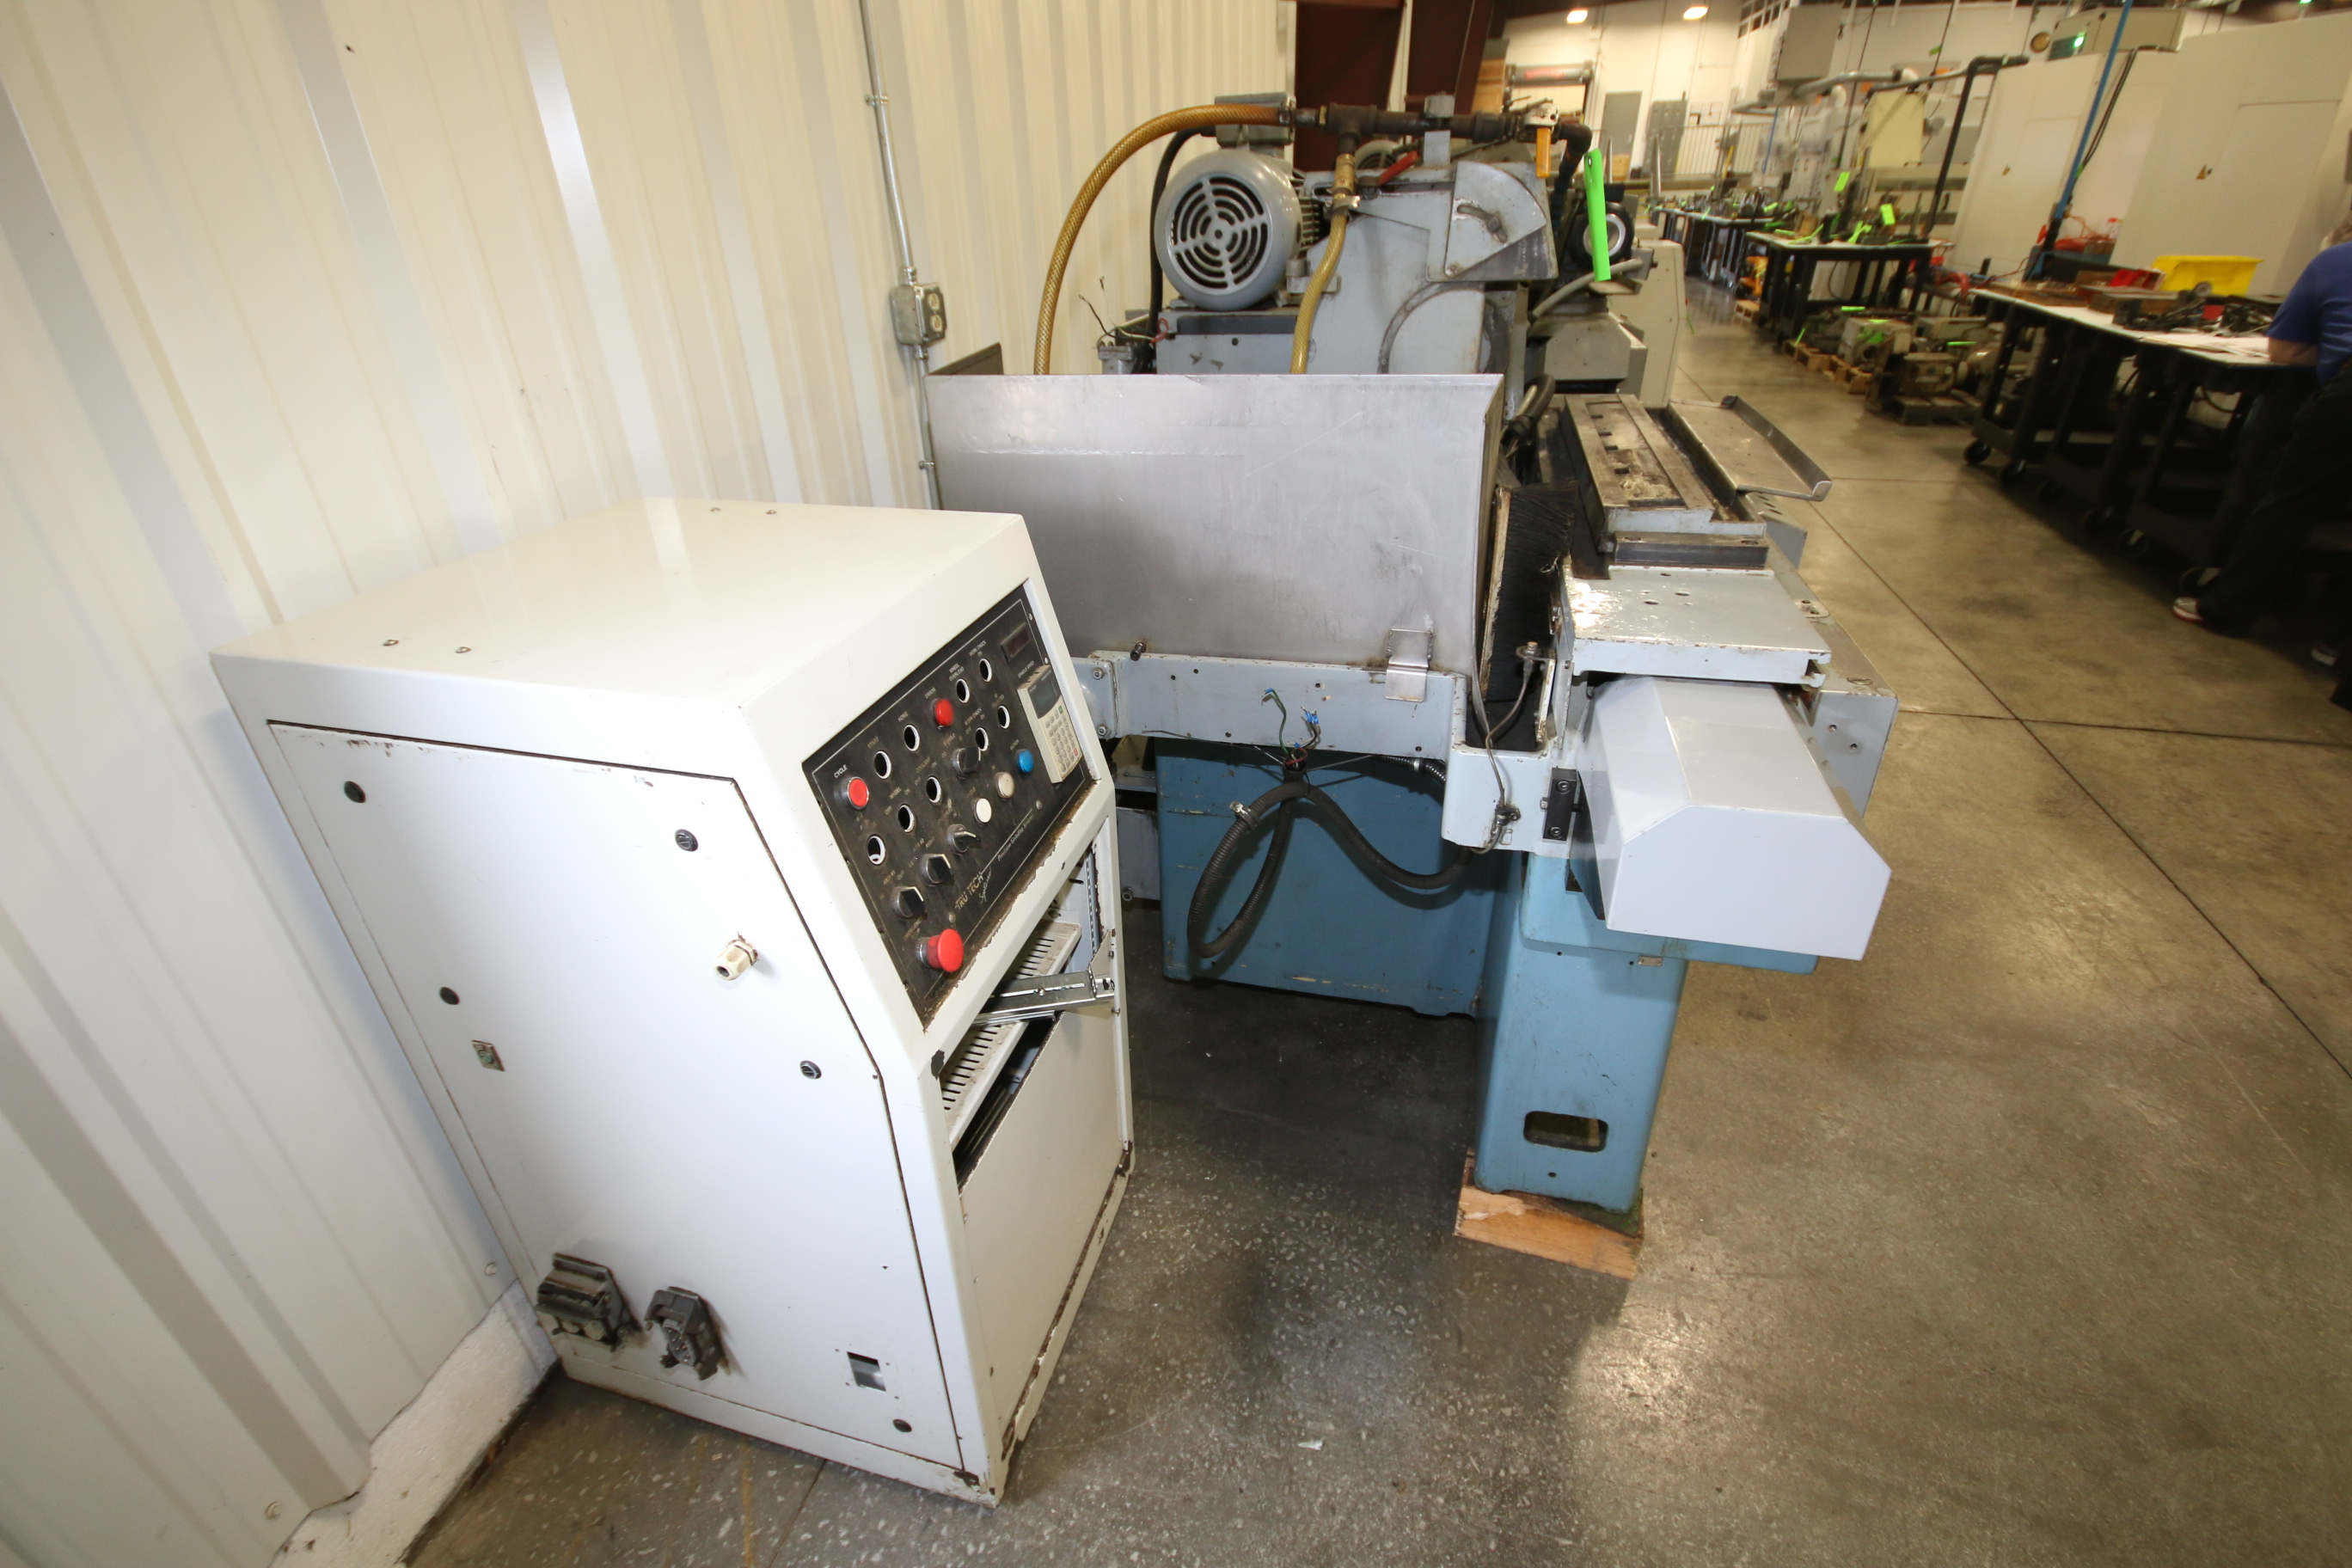 Lot 54 - 2005 & 2007 R-Series OD Grinders with Conversion to CNC by Tru Tech Systems, Model OD-8-20, S/N